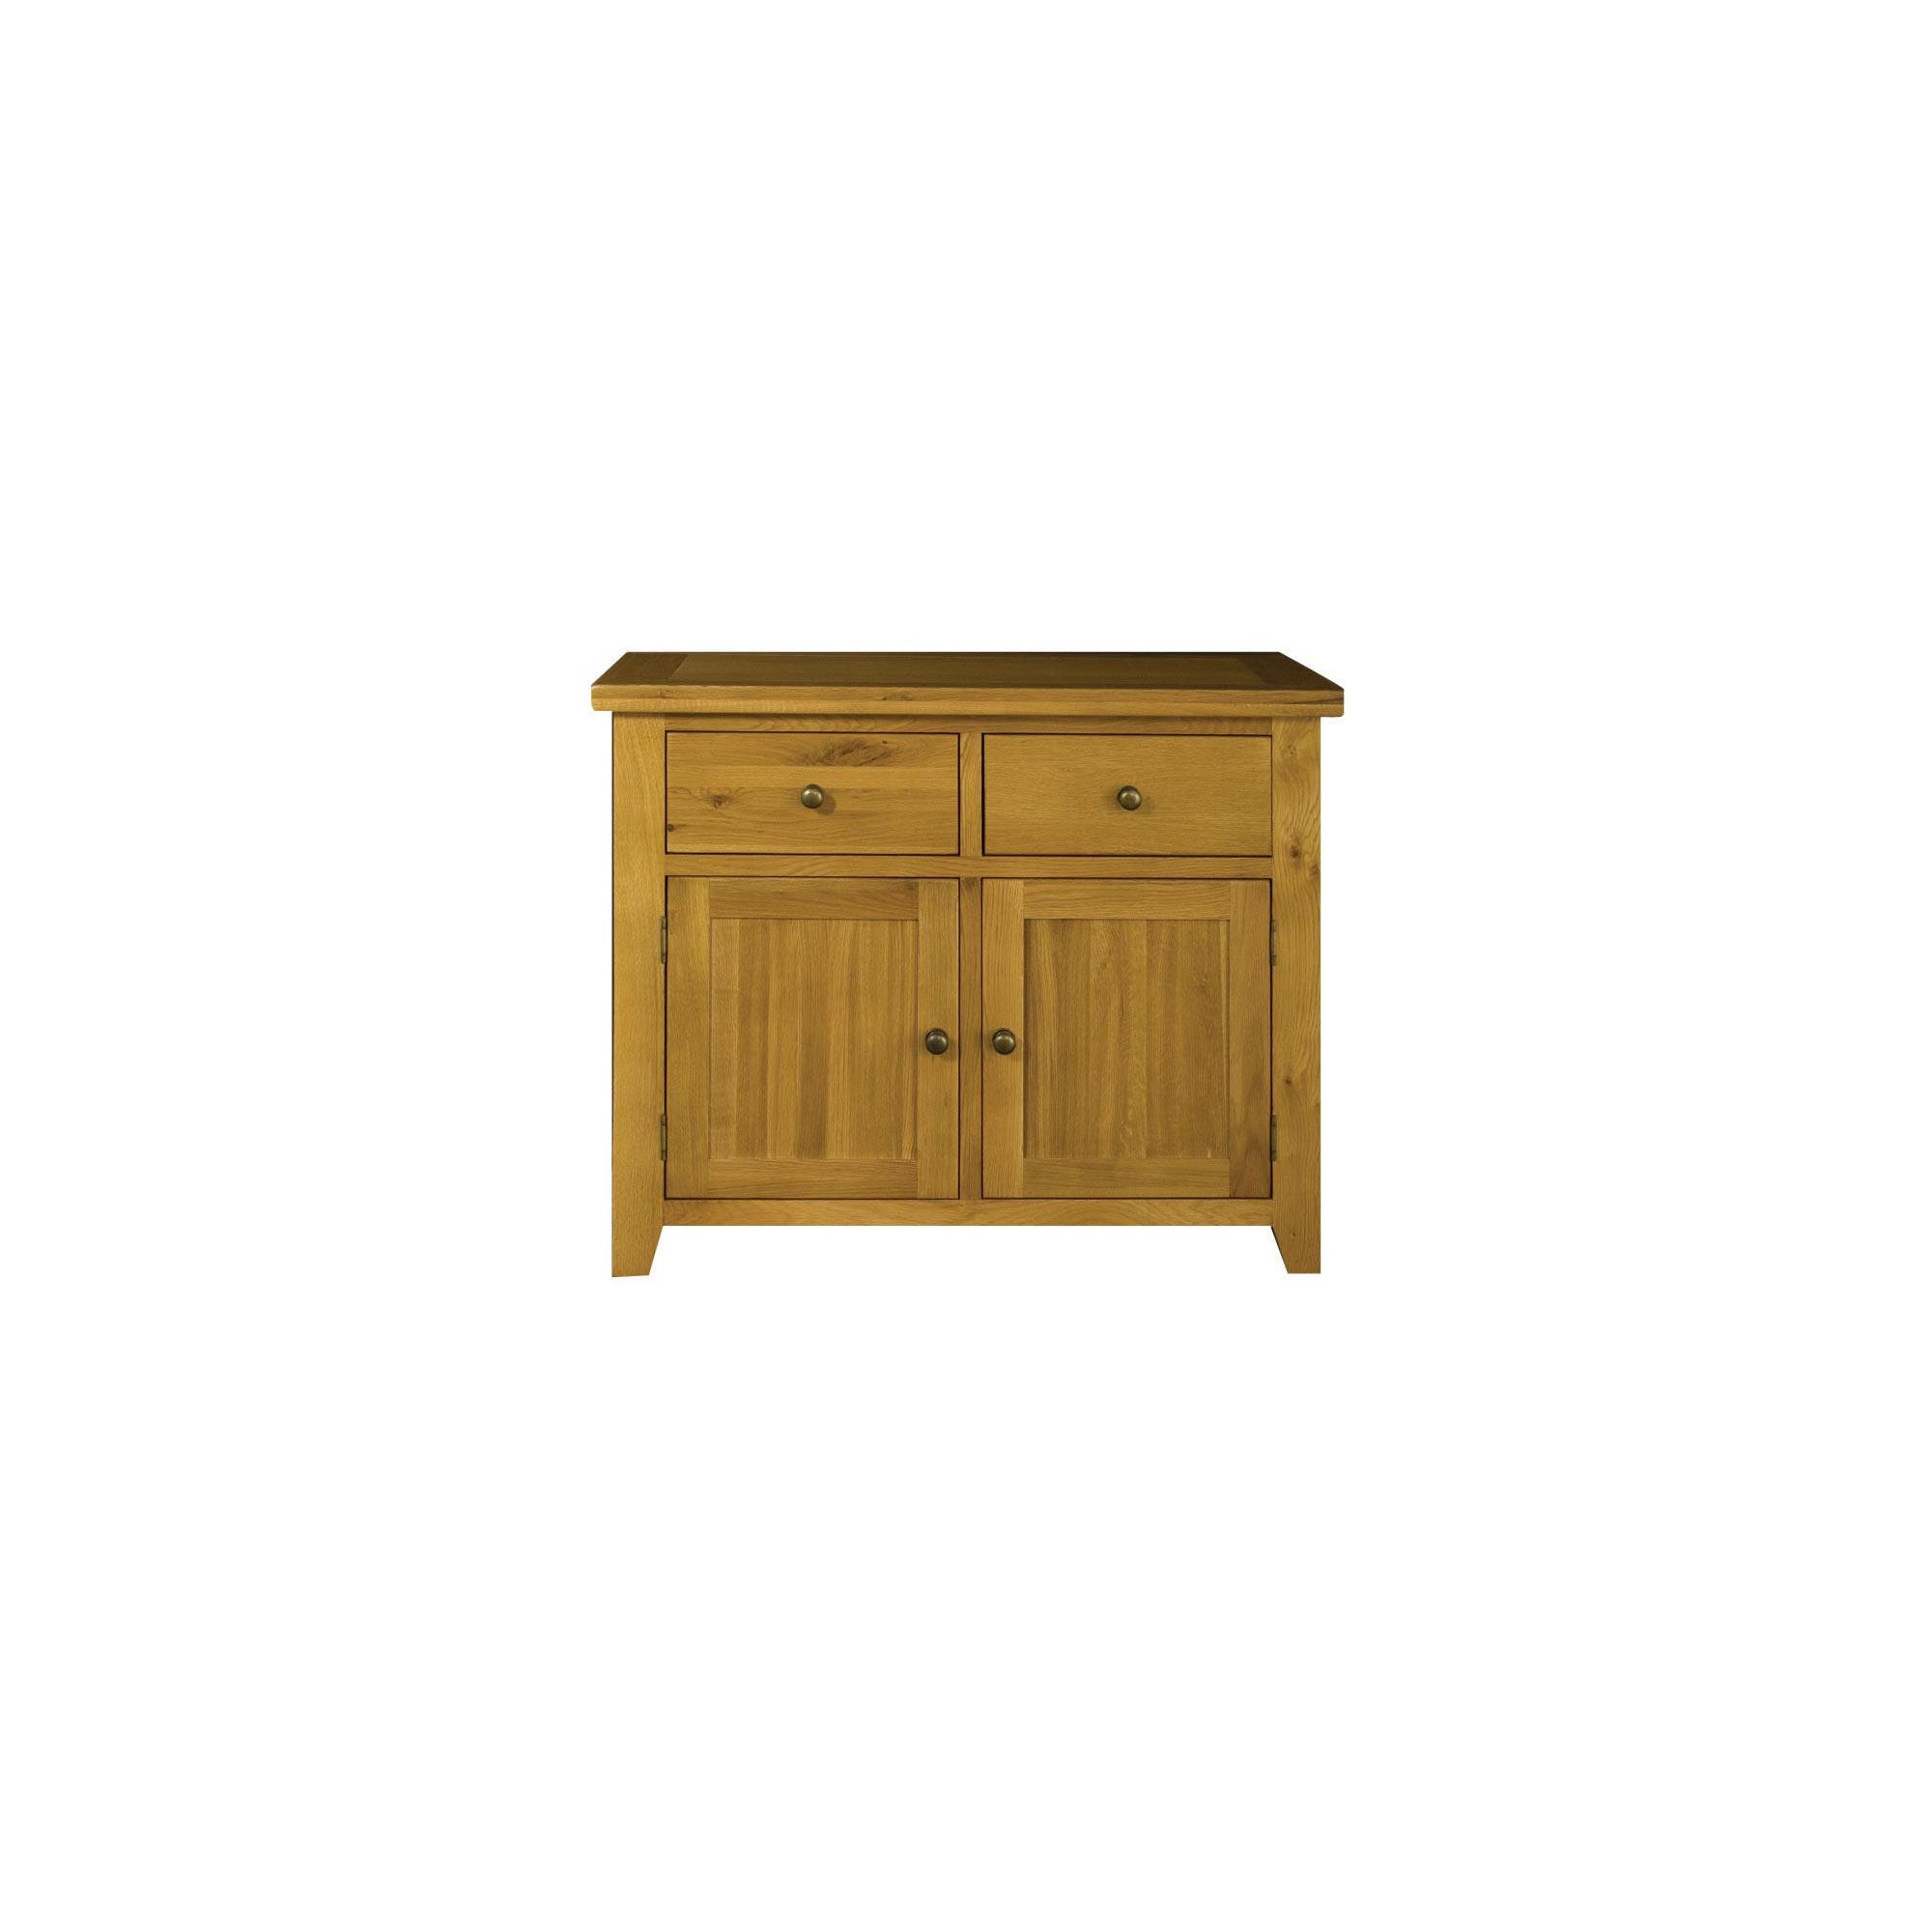 Alterton Furniture Michigan Sideboard at Tesco Direct